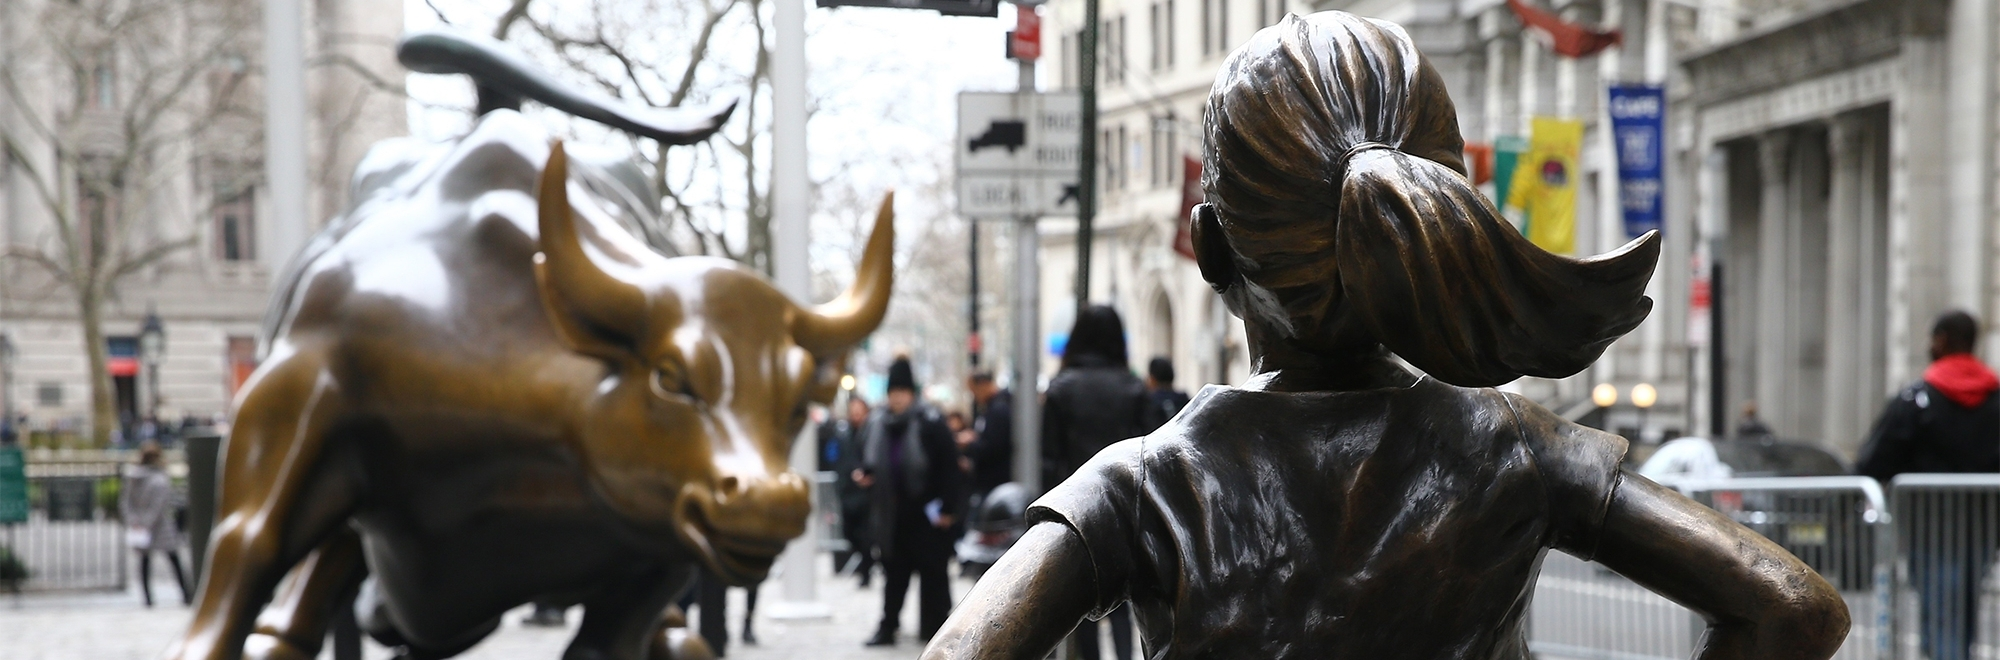 Is the Fearless Girl statue in New York art, commerce or vandalism?